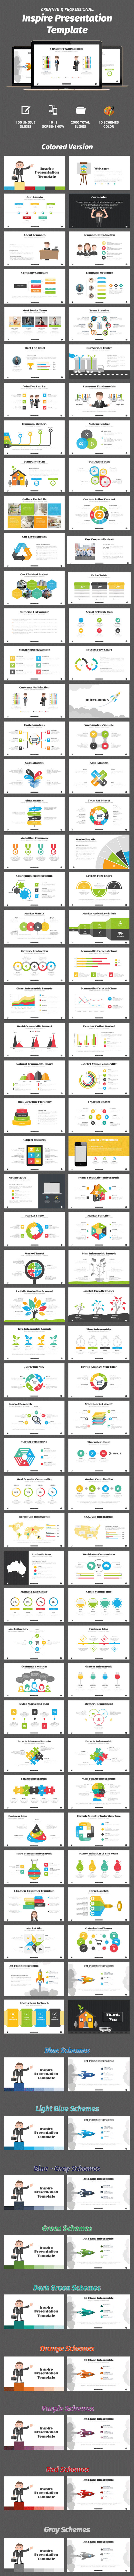 Inspire Powerpoint Template - Business PowerPoint Templates